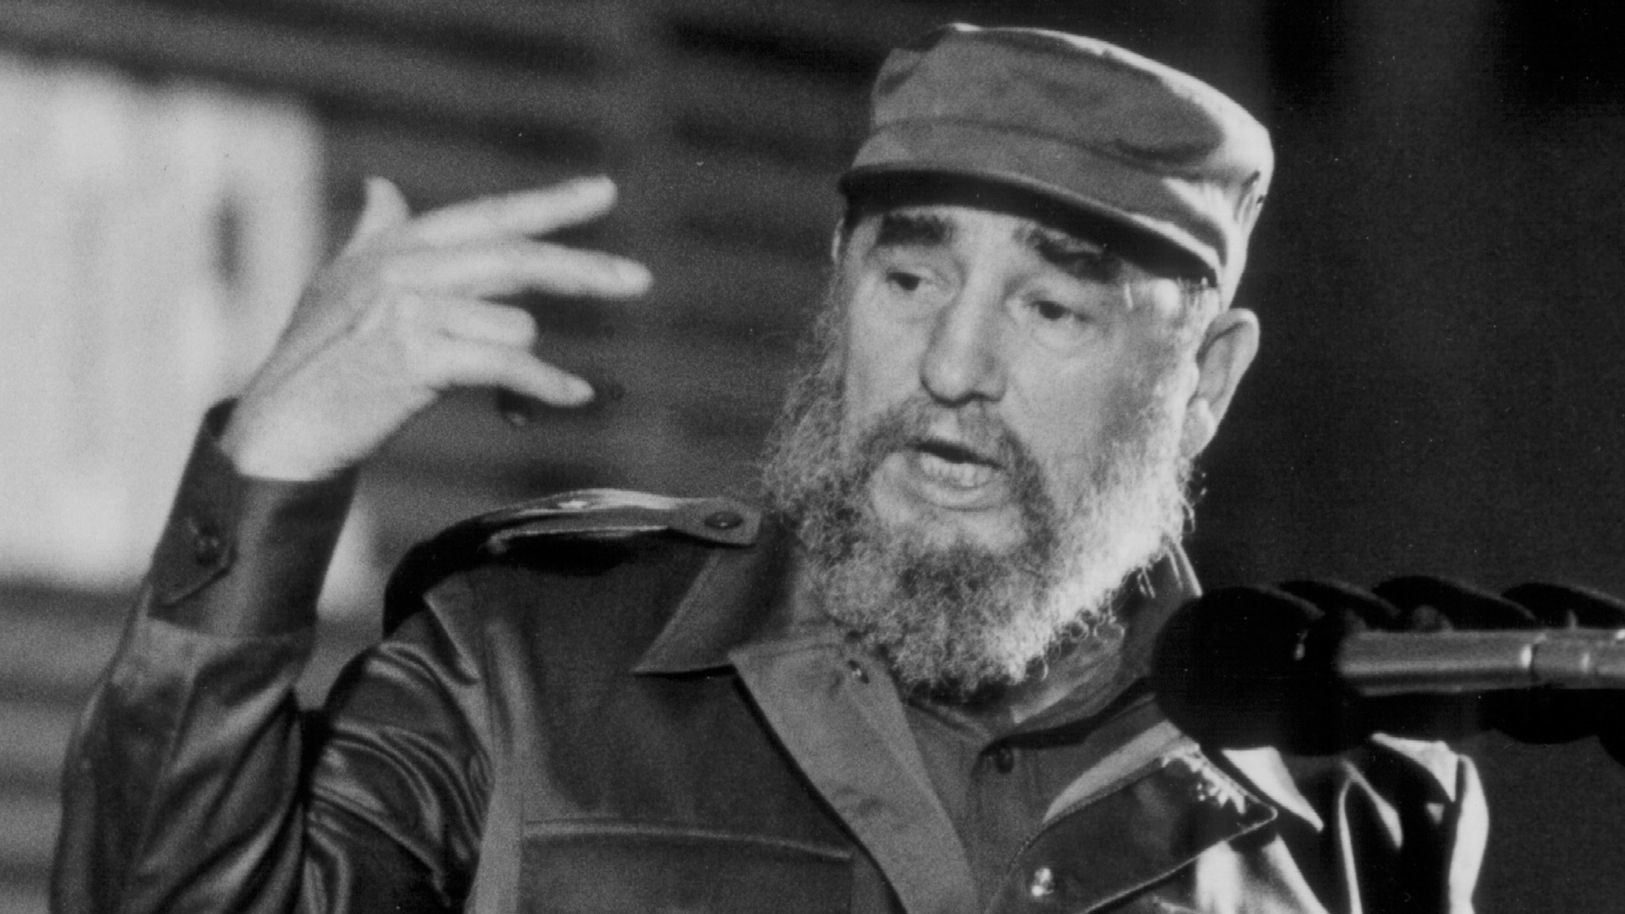 the successes and failures of fidel castro in cuba Fidel castro's economic legacy will be one of failure – but not perhaps quite as catastrophic a failure as his many detractors would insist the cuba of the 1950s was not some sort of golden age, for though officially the country was as rich as italy in terms of gdp per head, that wealth was unevenly distributed and some 40 per cent of the population did not have proper jobs.